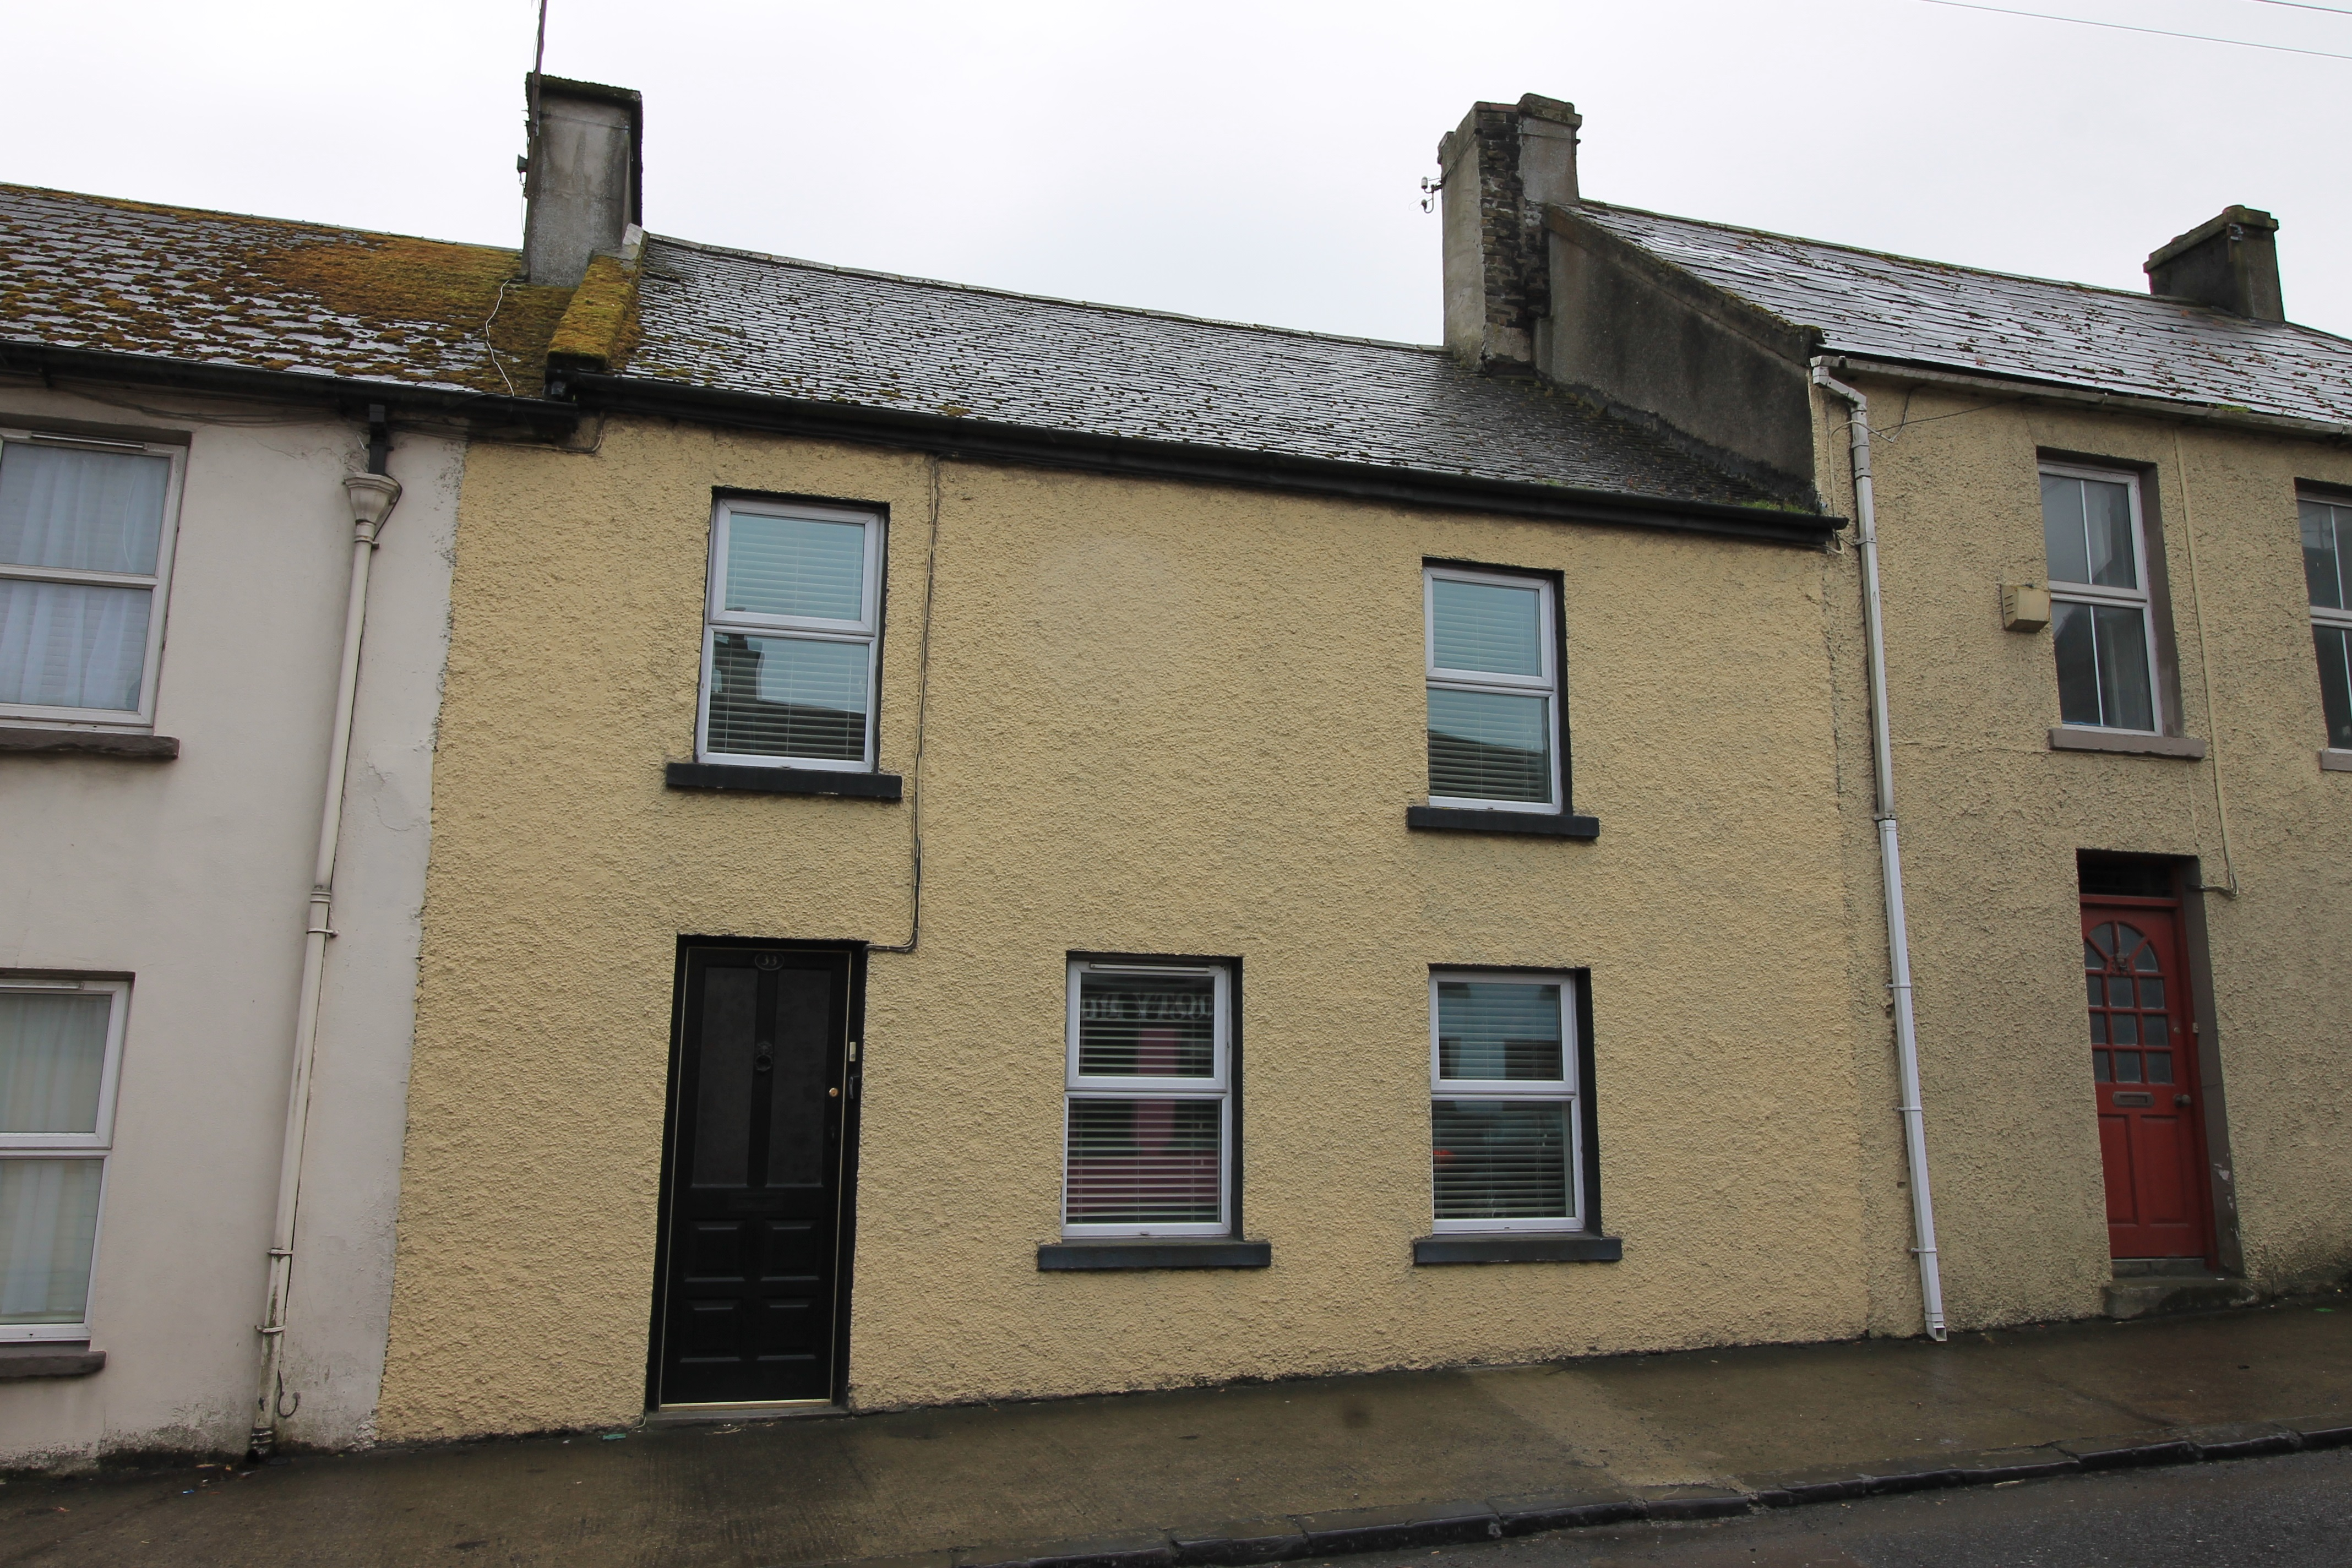 33 O 'Brien St, Tipperary Town, Co. Tipperary